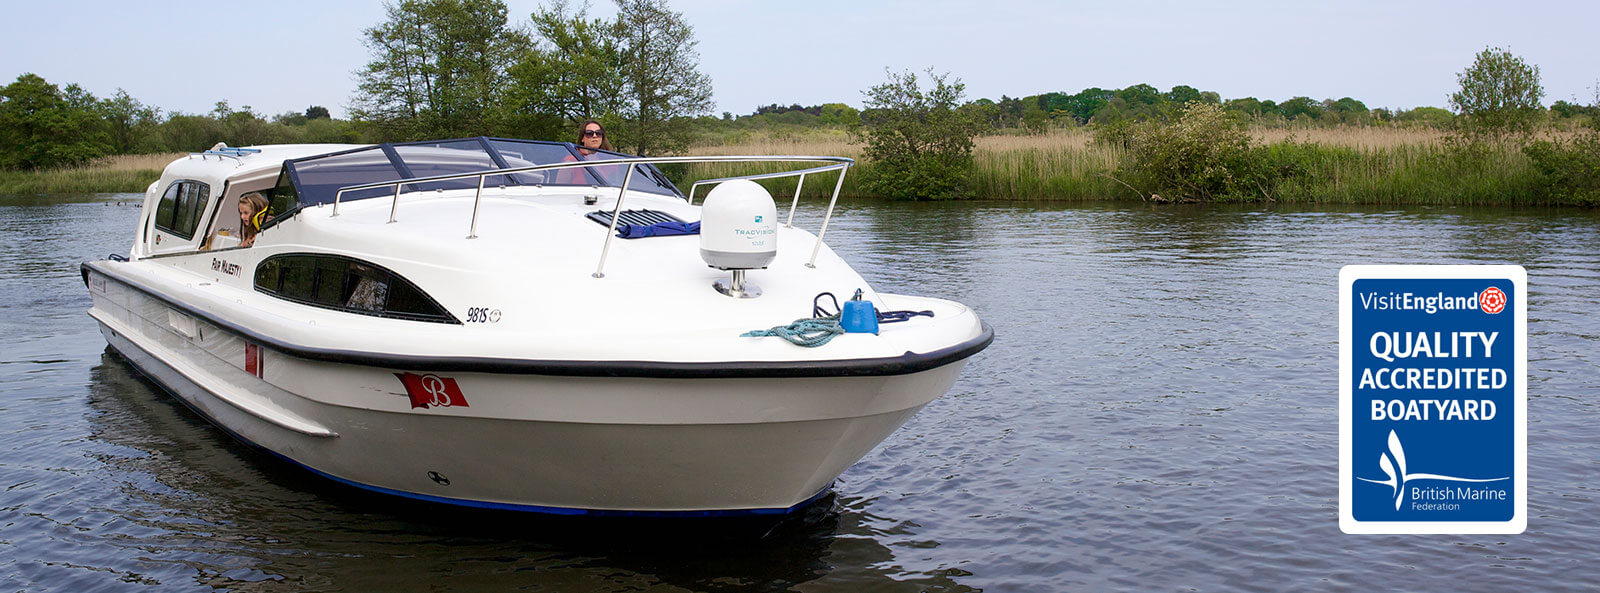 Hire Boat Federation Moorings Norfolk Broads Direct